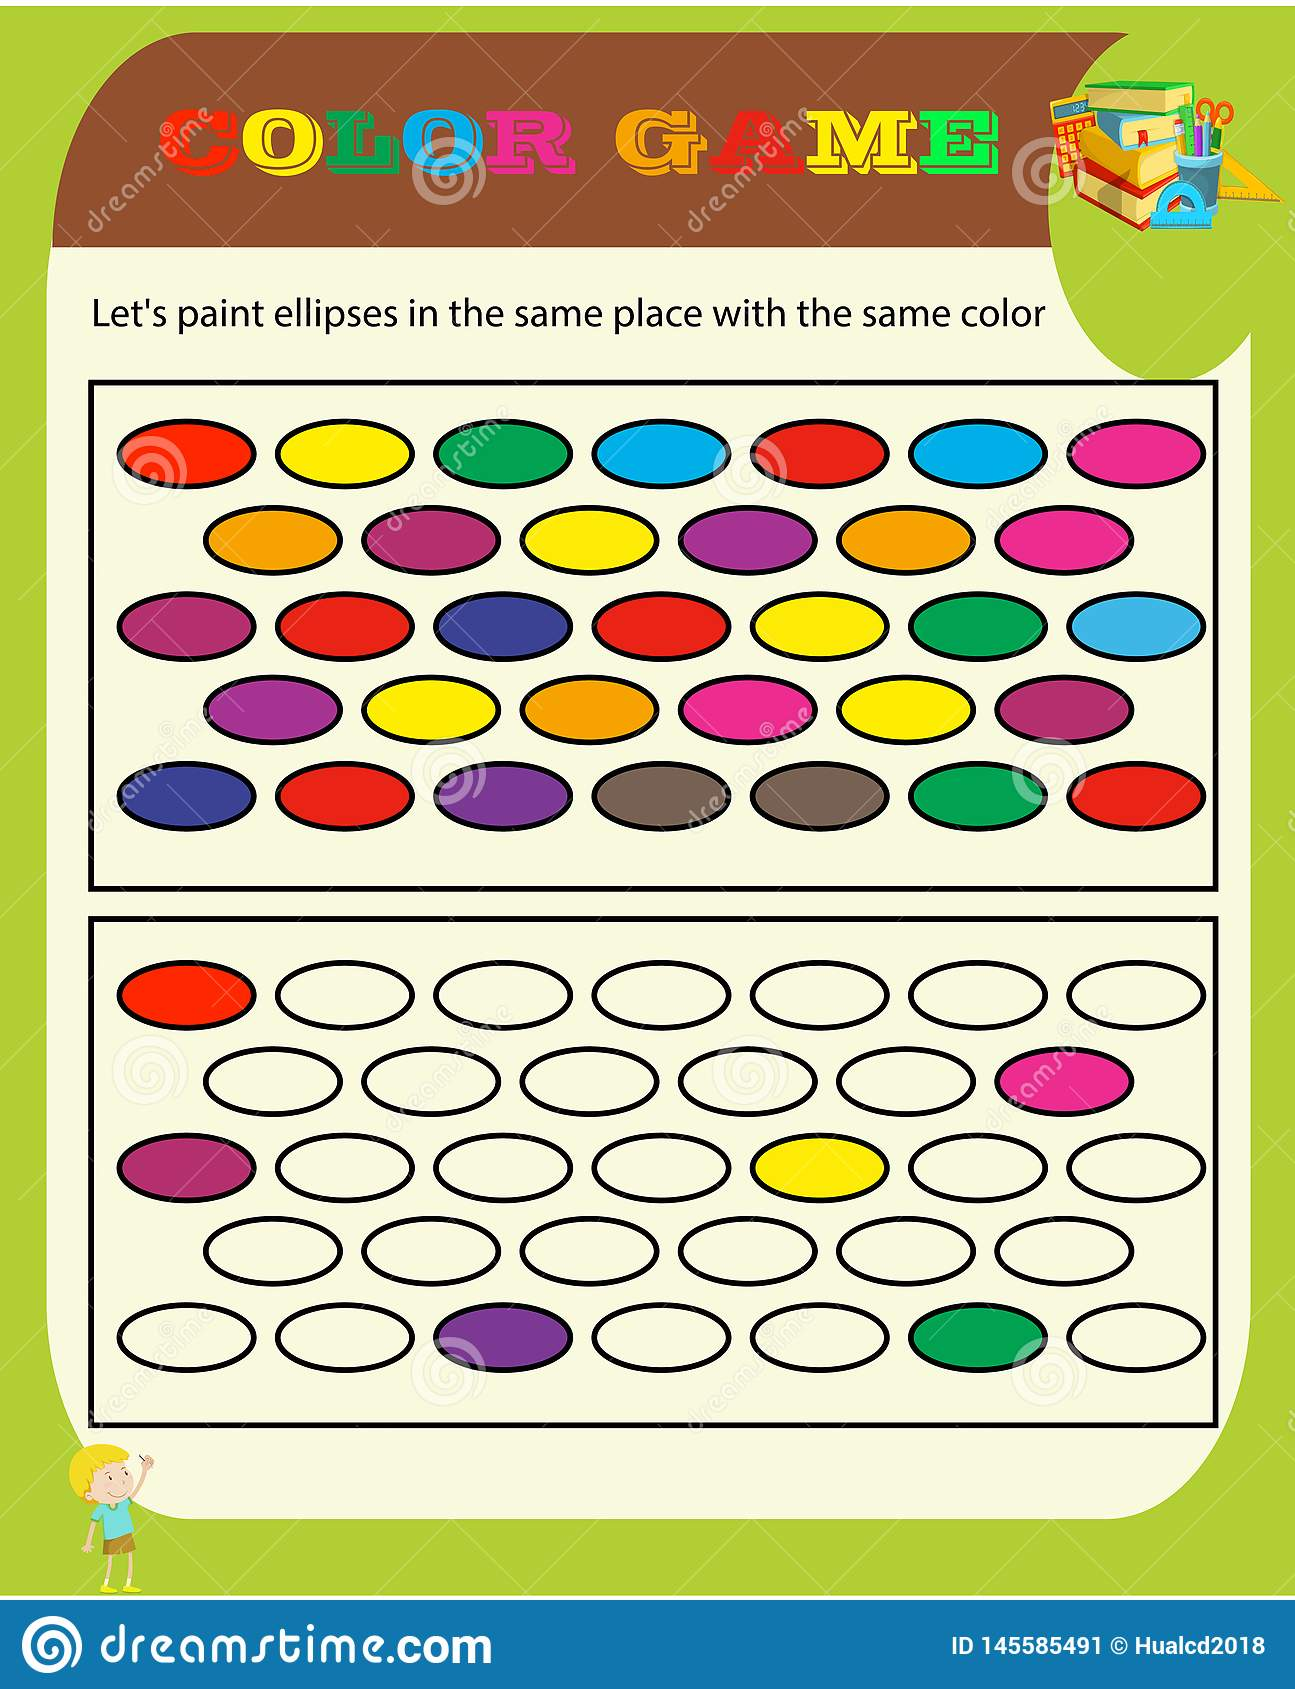 Color Game Sudoku Game With Pictures For Children Easy